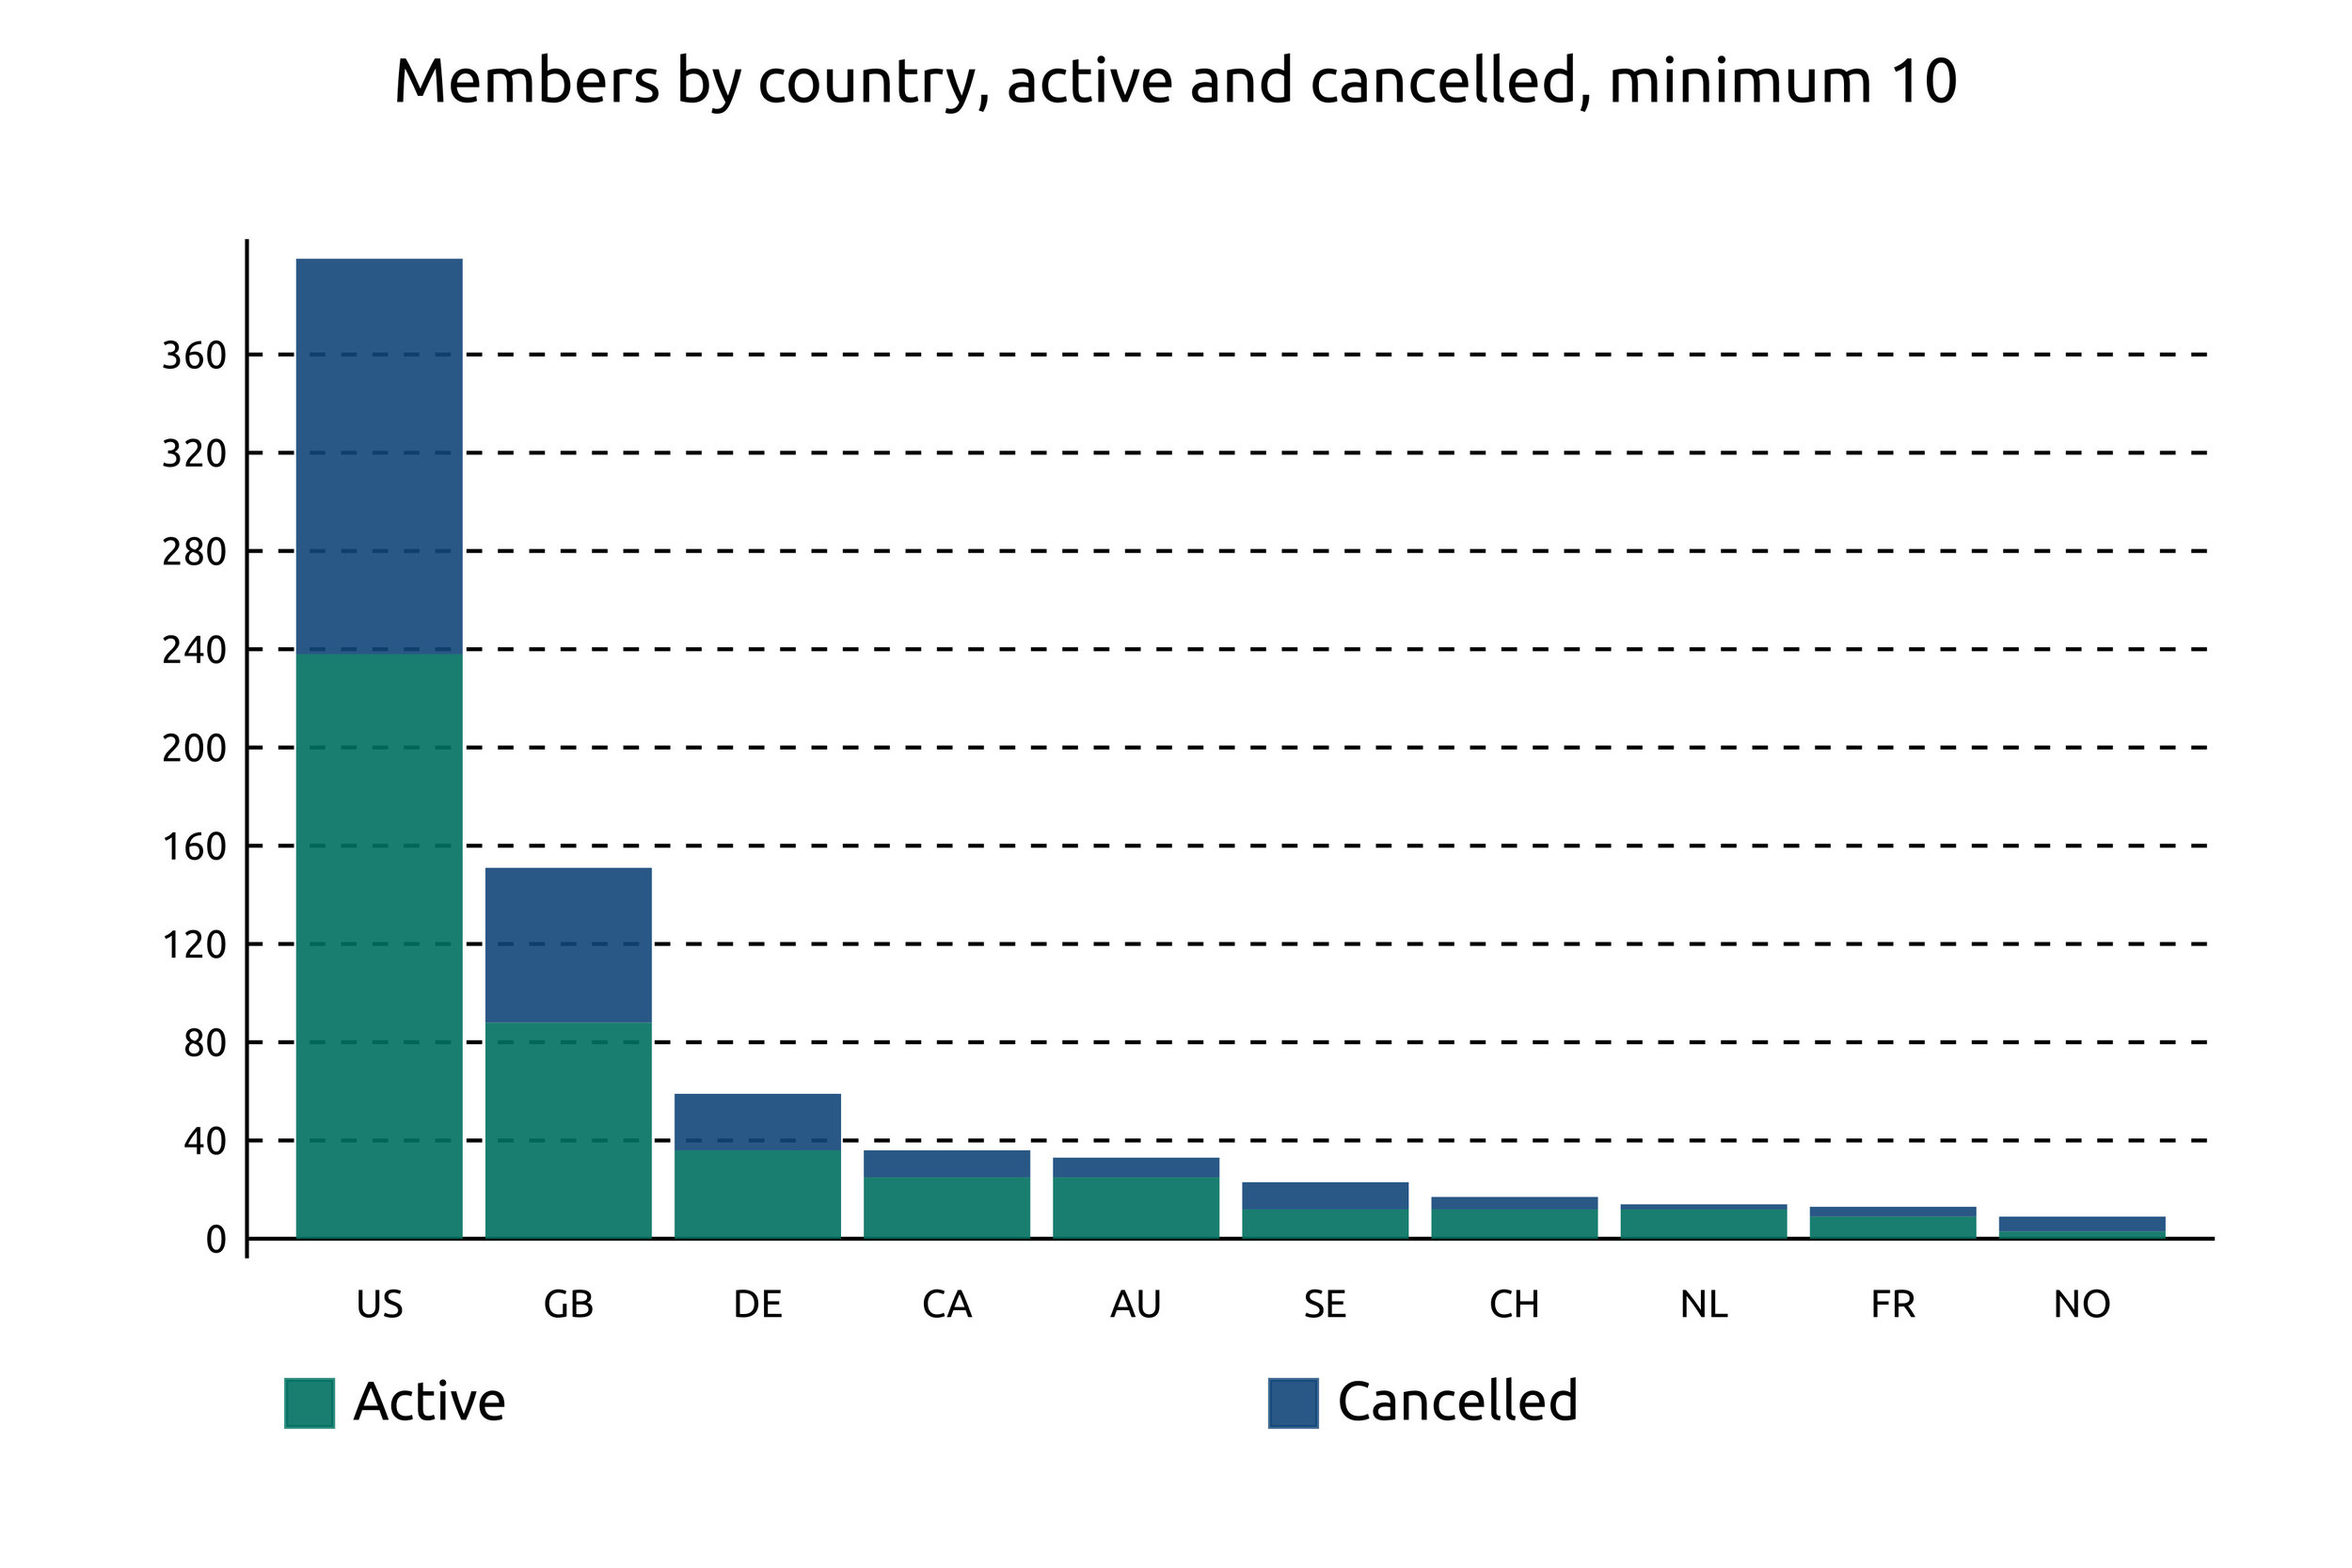 Members by country. We show only countries with active+cancelled >= 10. Based on our records.